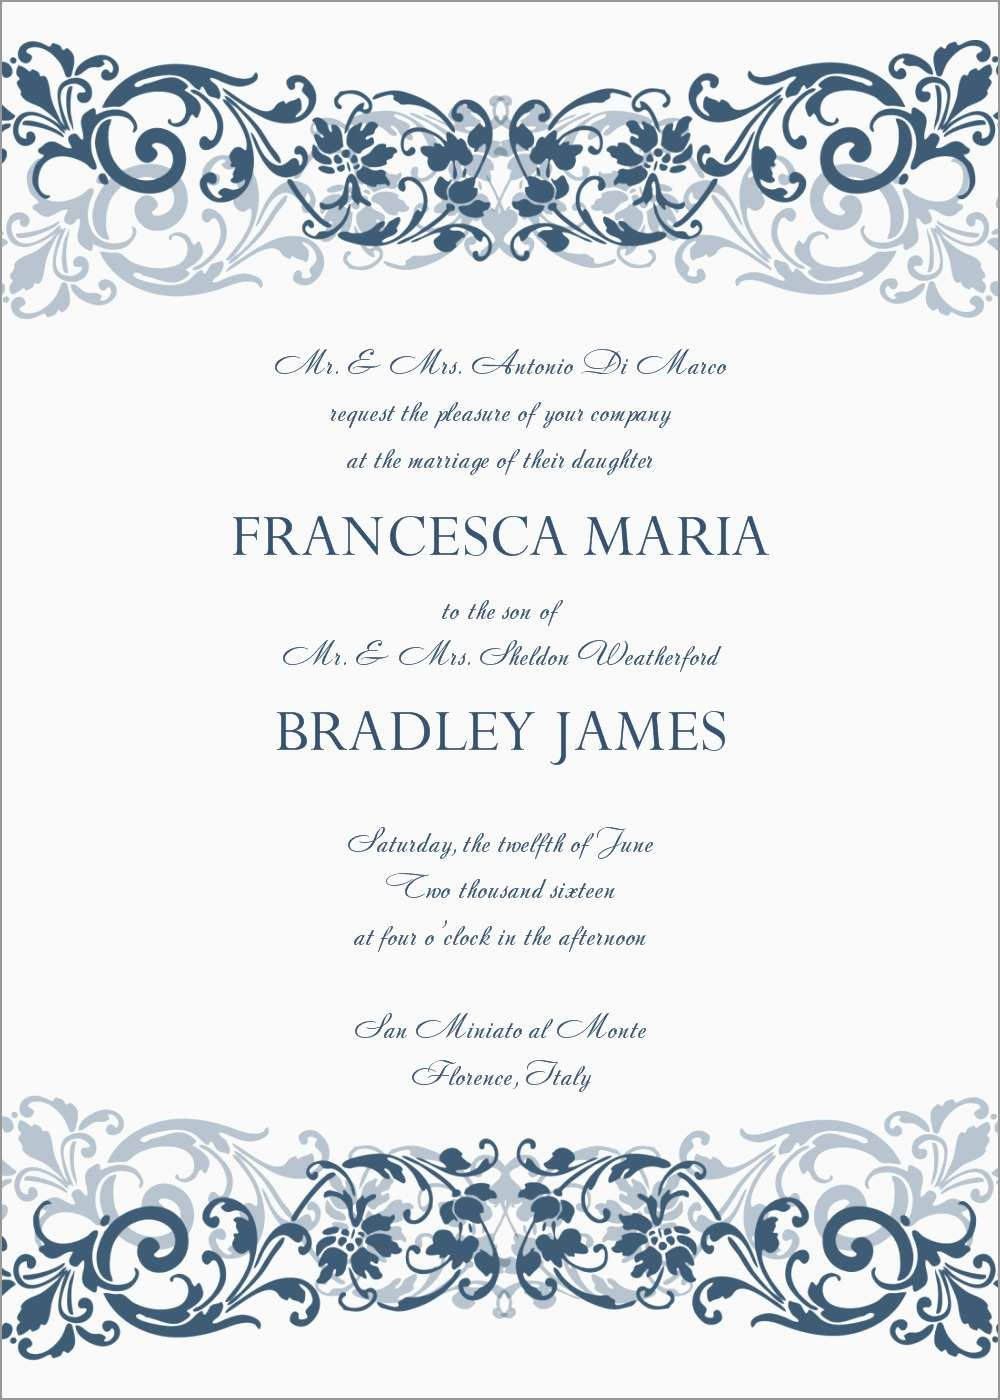 Free Printable Wedding Invitation Templates For Microsoft Word - Free Printable Wedding Invitation Templates For Microsoft Word